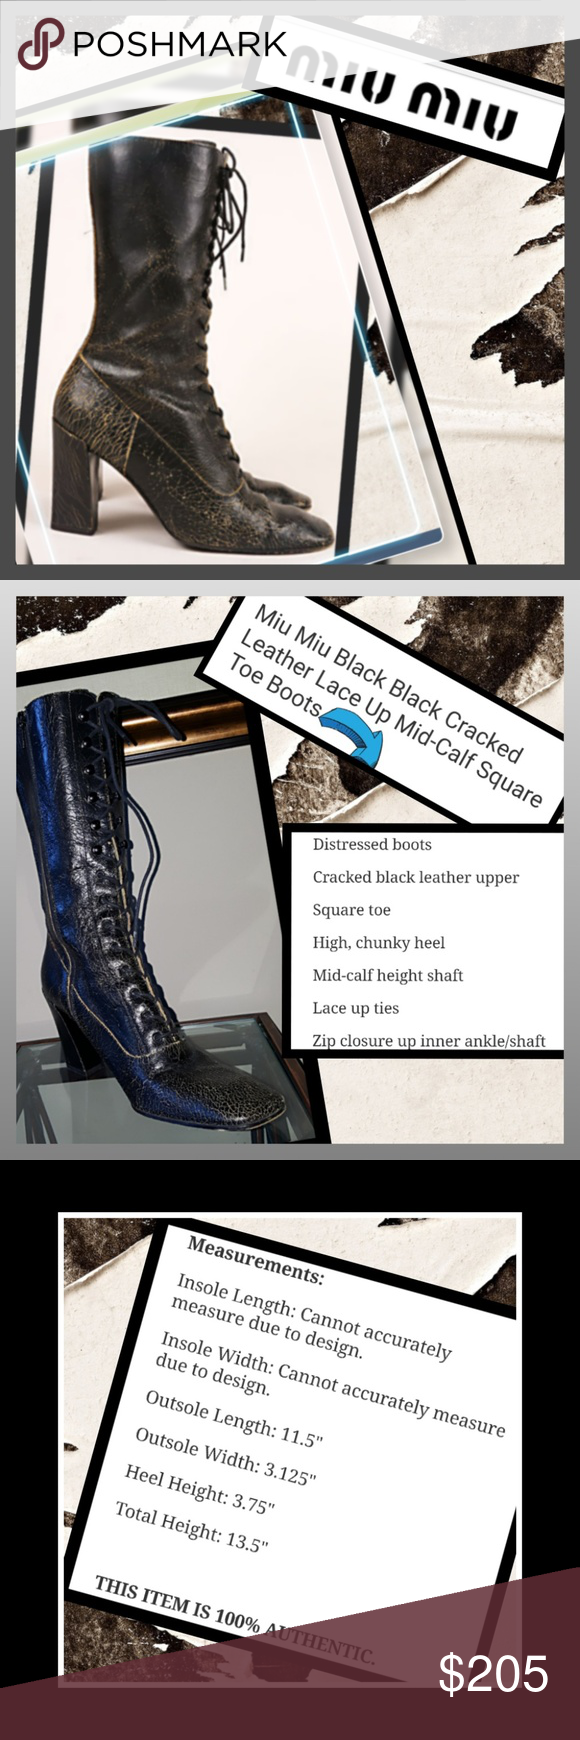 7edb7a77000 Spotted while shopping on Poshmark  MIU MIU Lace Front boots!  poshmark   fashion  shopping  style  Miu Miu  Shoes